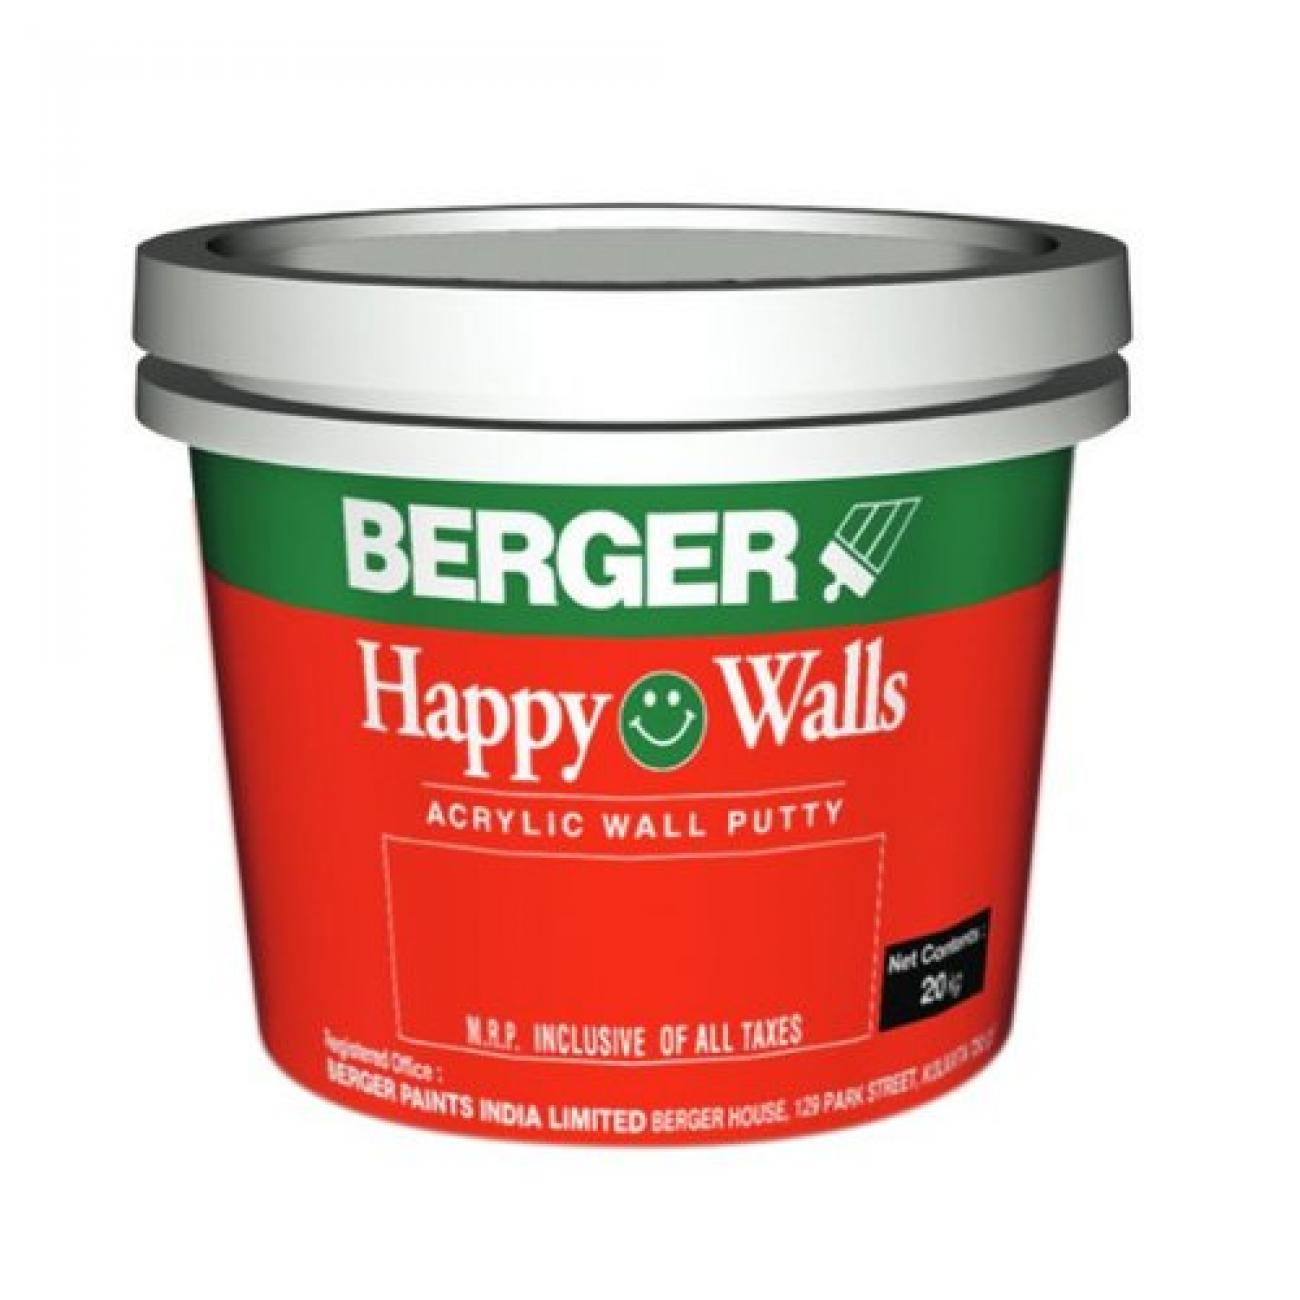 Berger_Happy_Wall_Acrylic_Putty